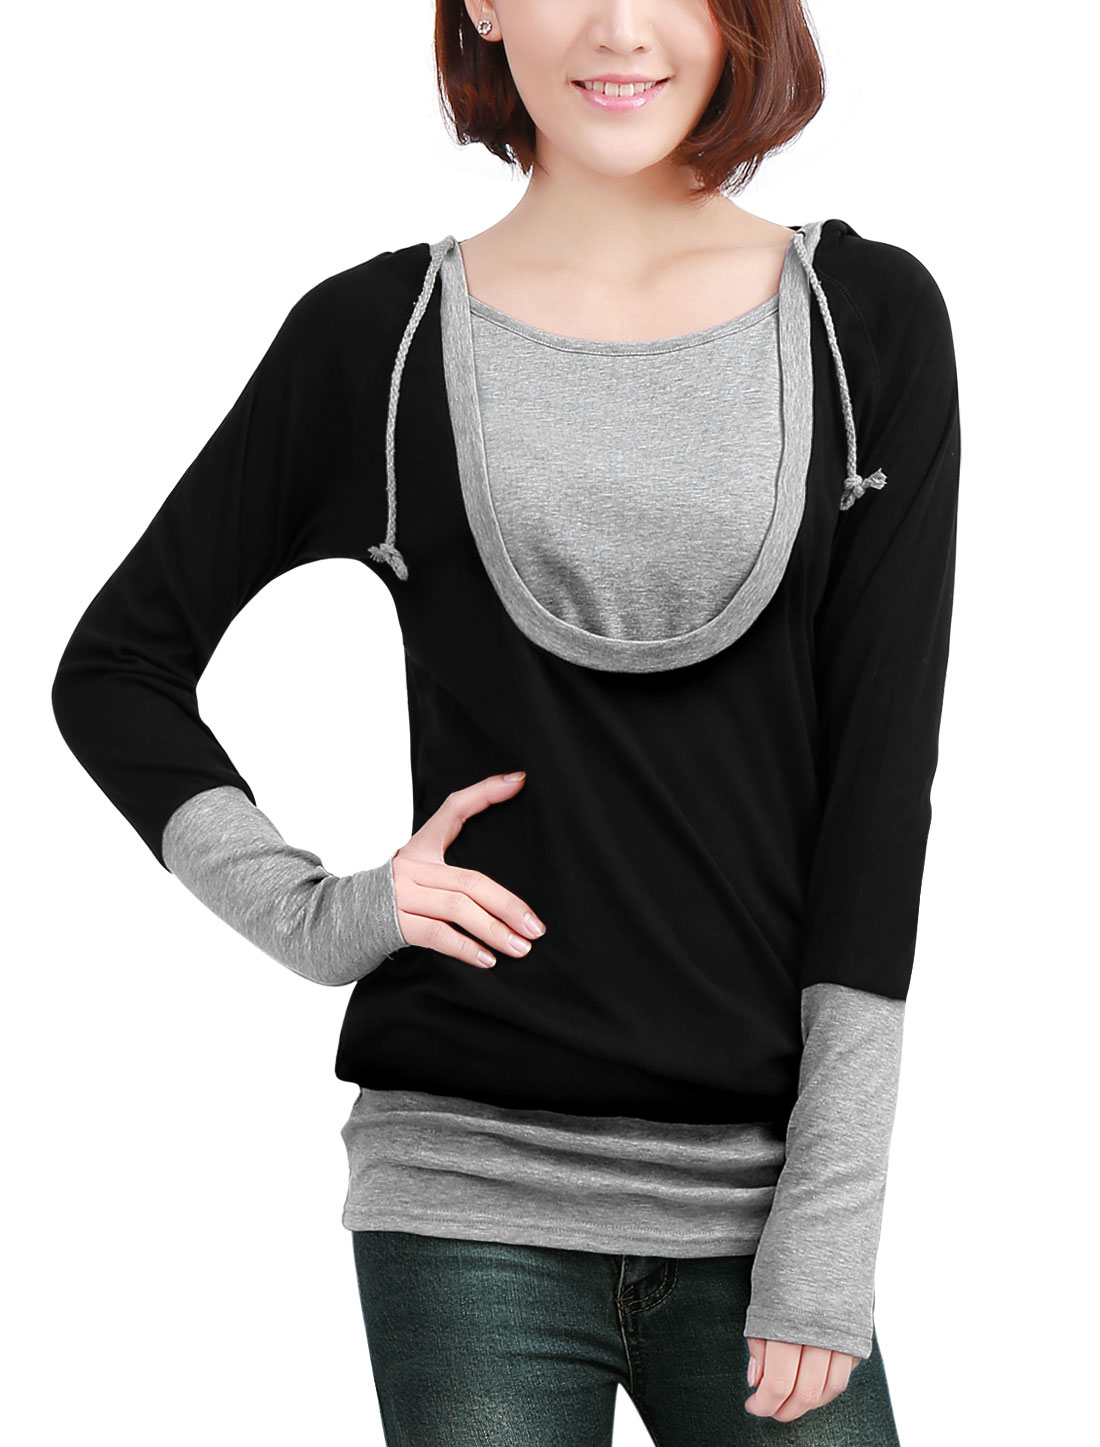 Lady Black Gray Design Scoop Neck Drawstring Hoody Tunic Shirt S